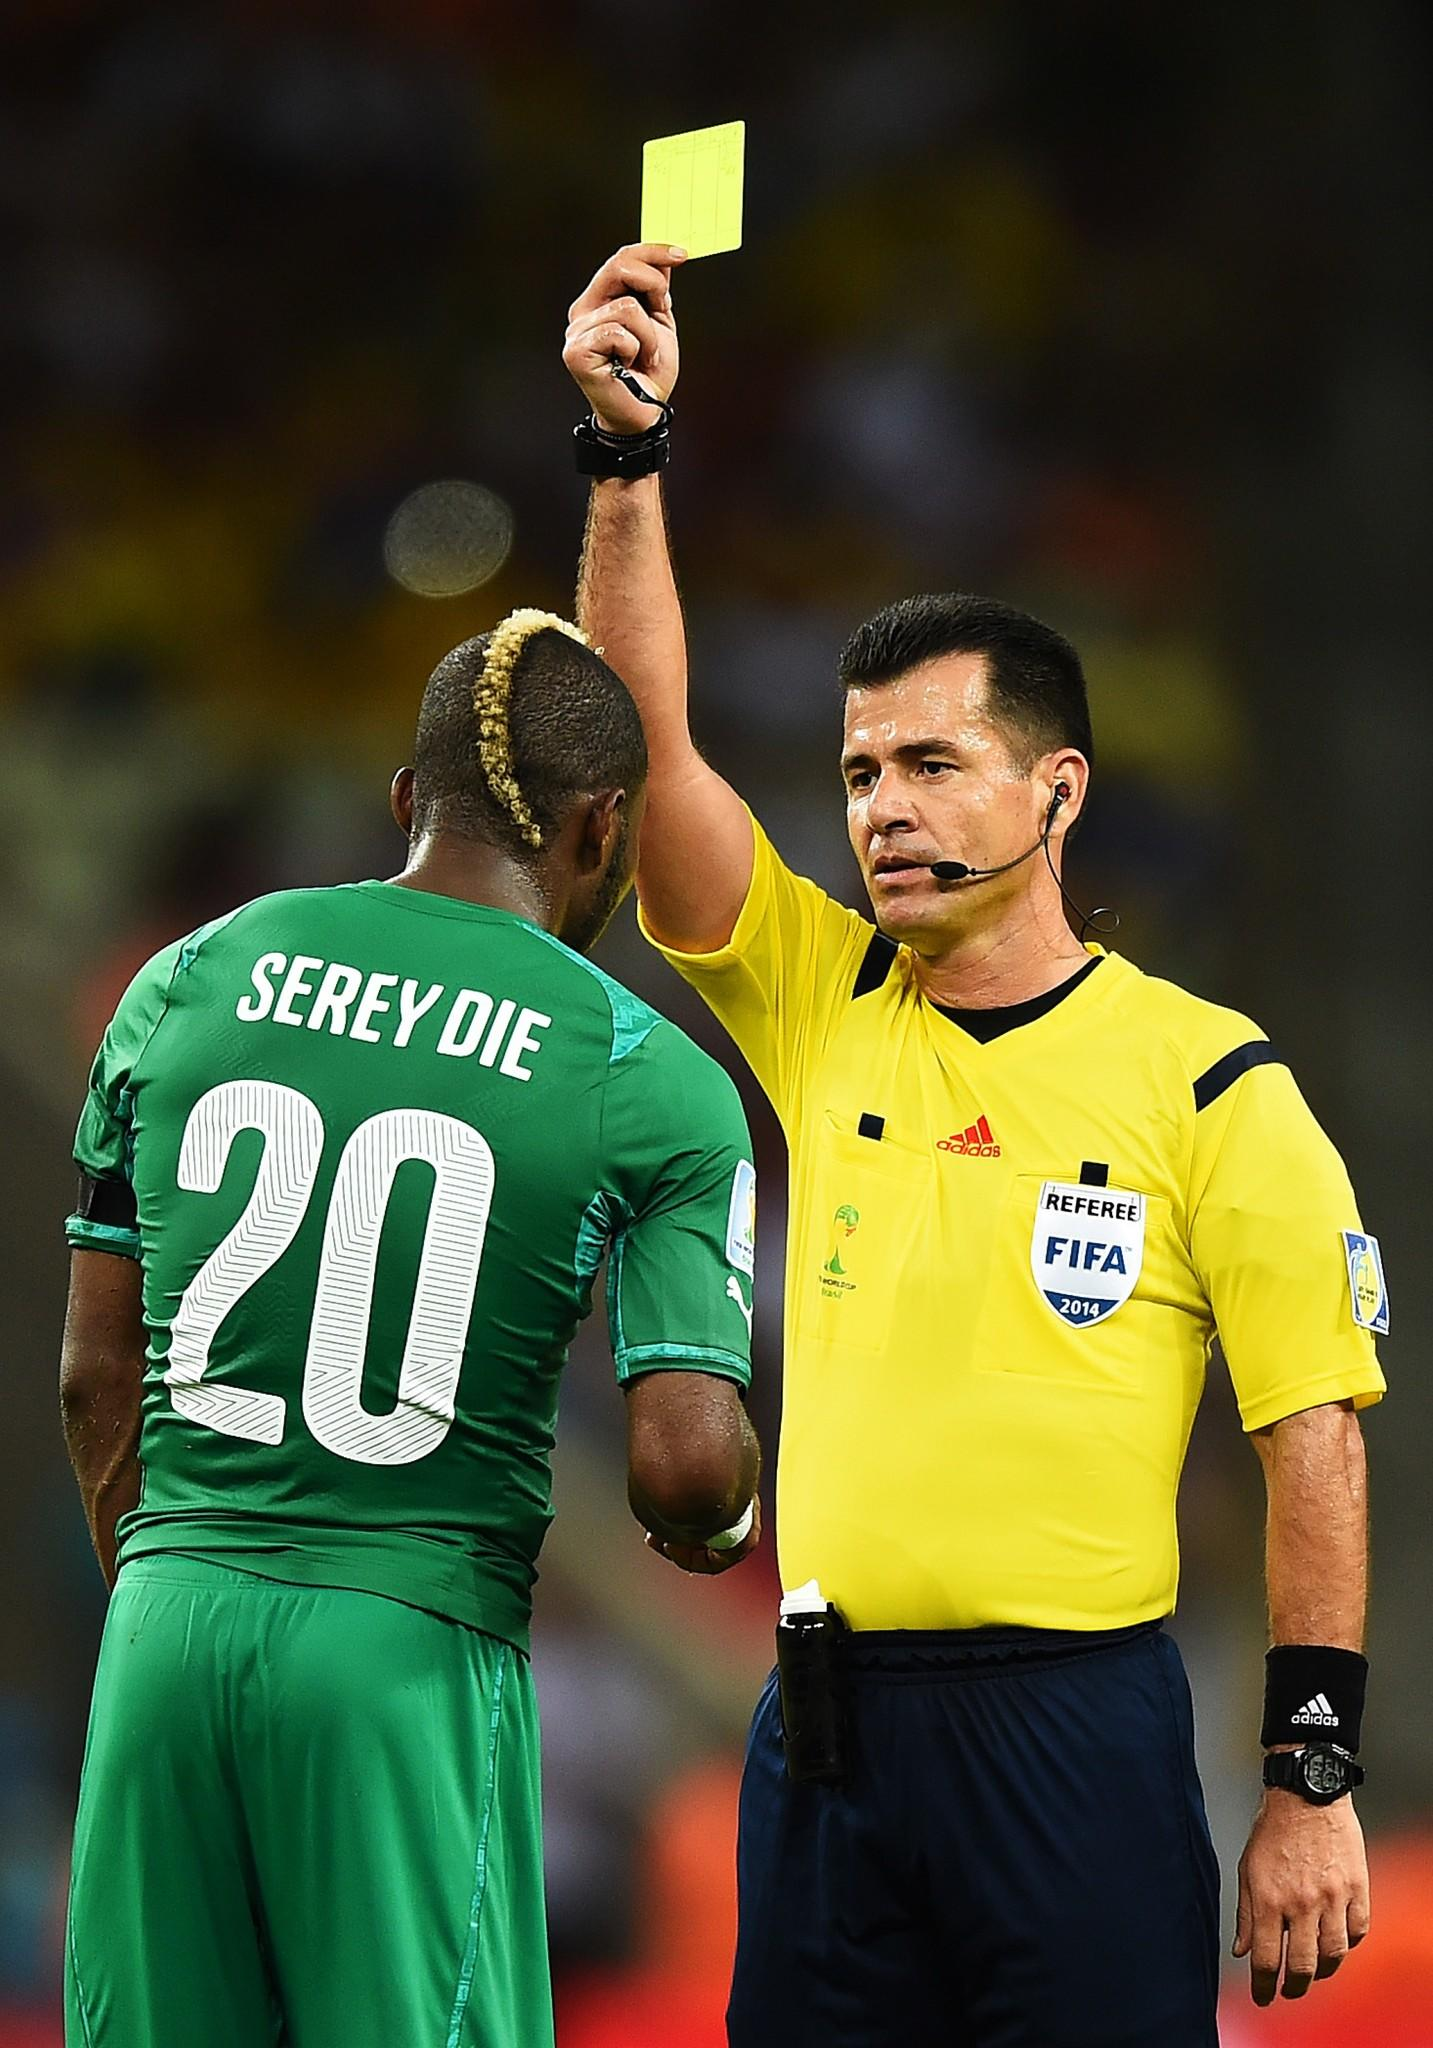 Die Serey of the Ivory Coast is shown a yellow card by referee Carlos Vera during the 2014 FIFA World Cup Brazil Group C match between Greece and the Ivory Coast.